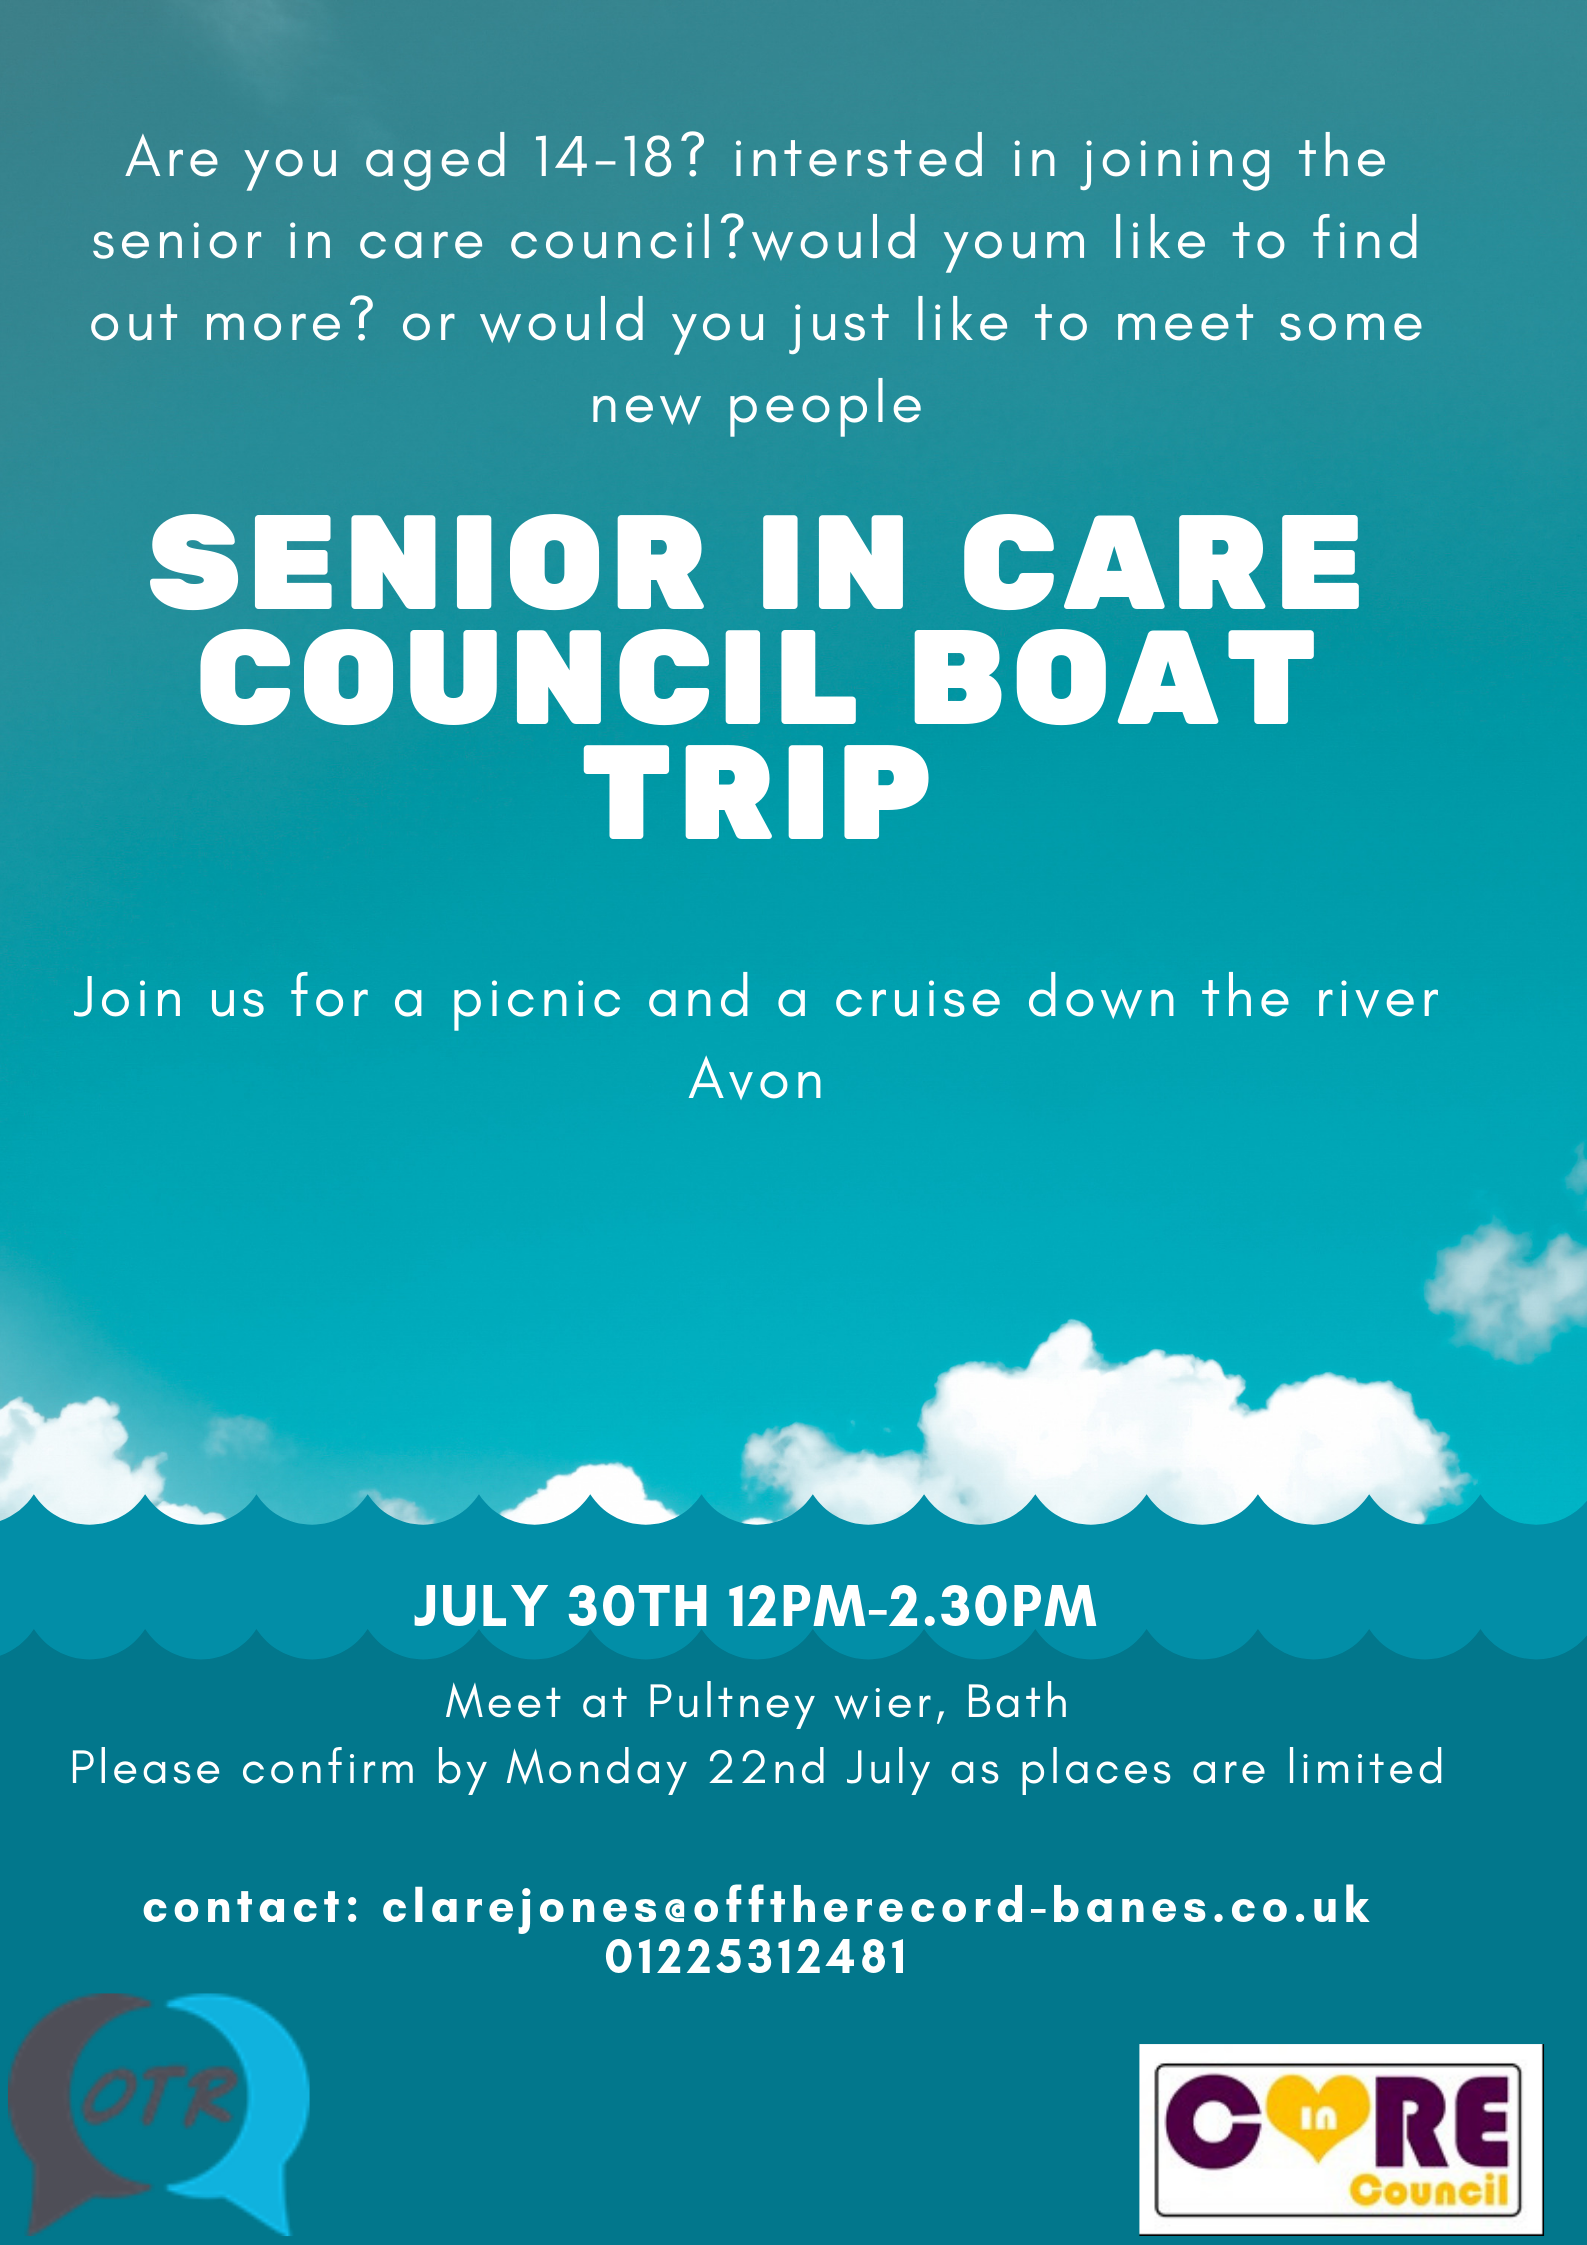 Are you aged 14-18_ intersted in joining the senior in care council_would youm like to find out more_ or would you just like to meet some new people.png